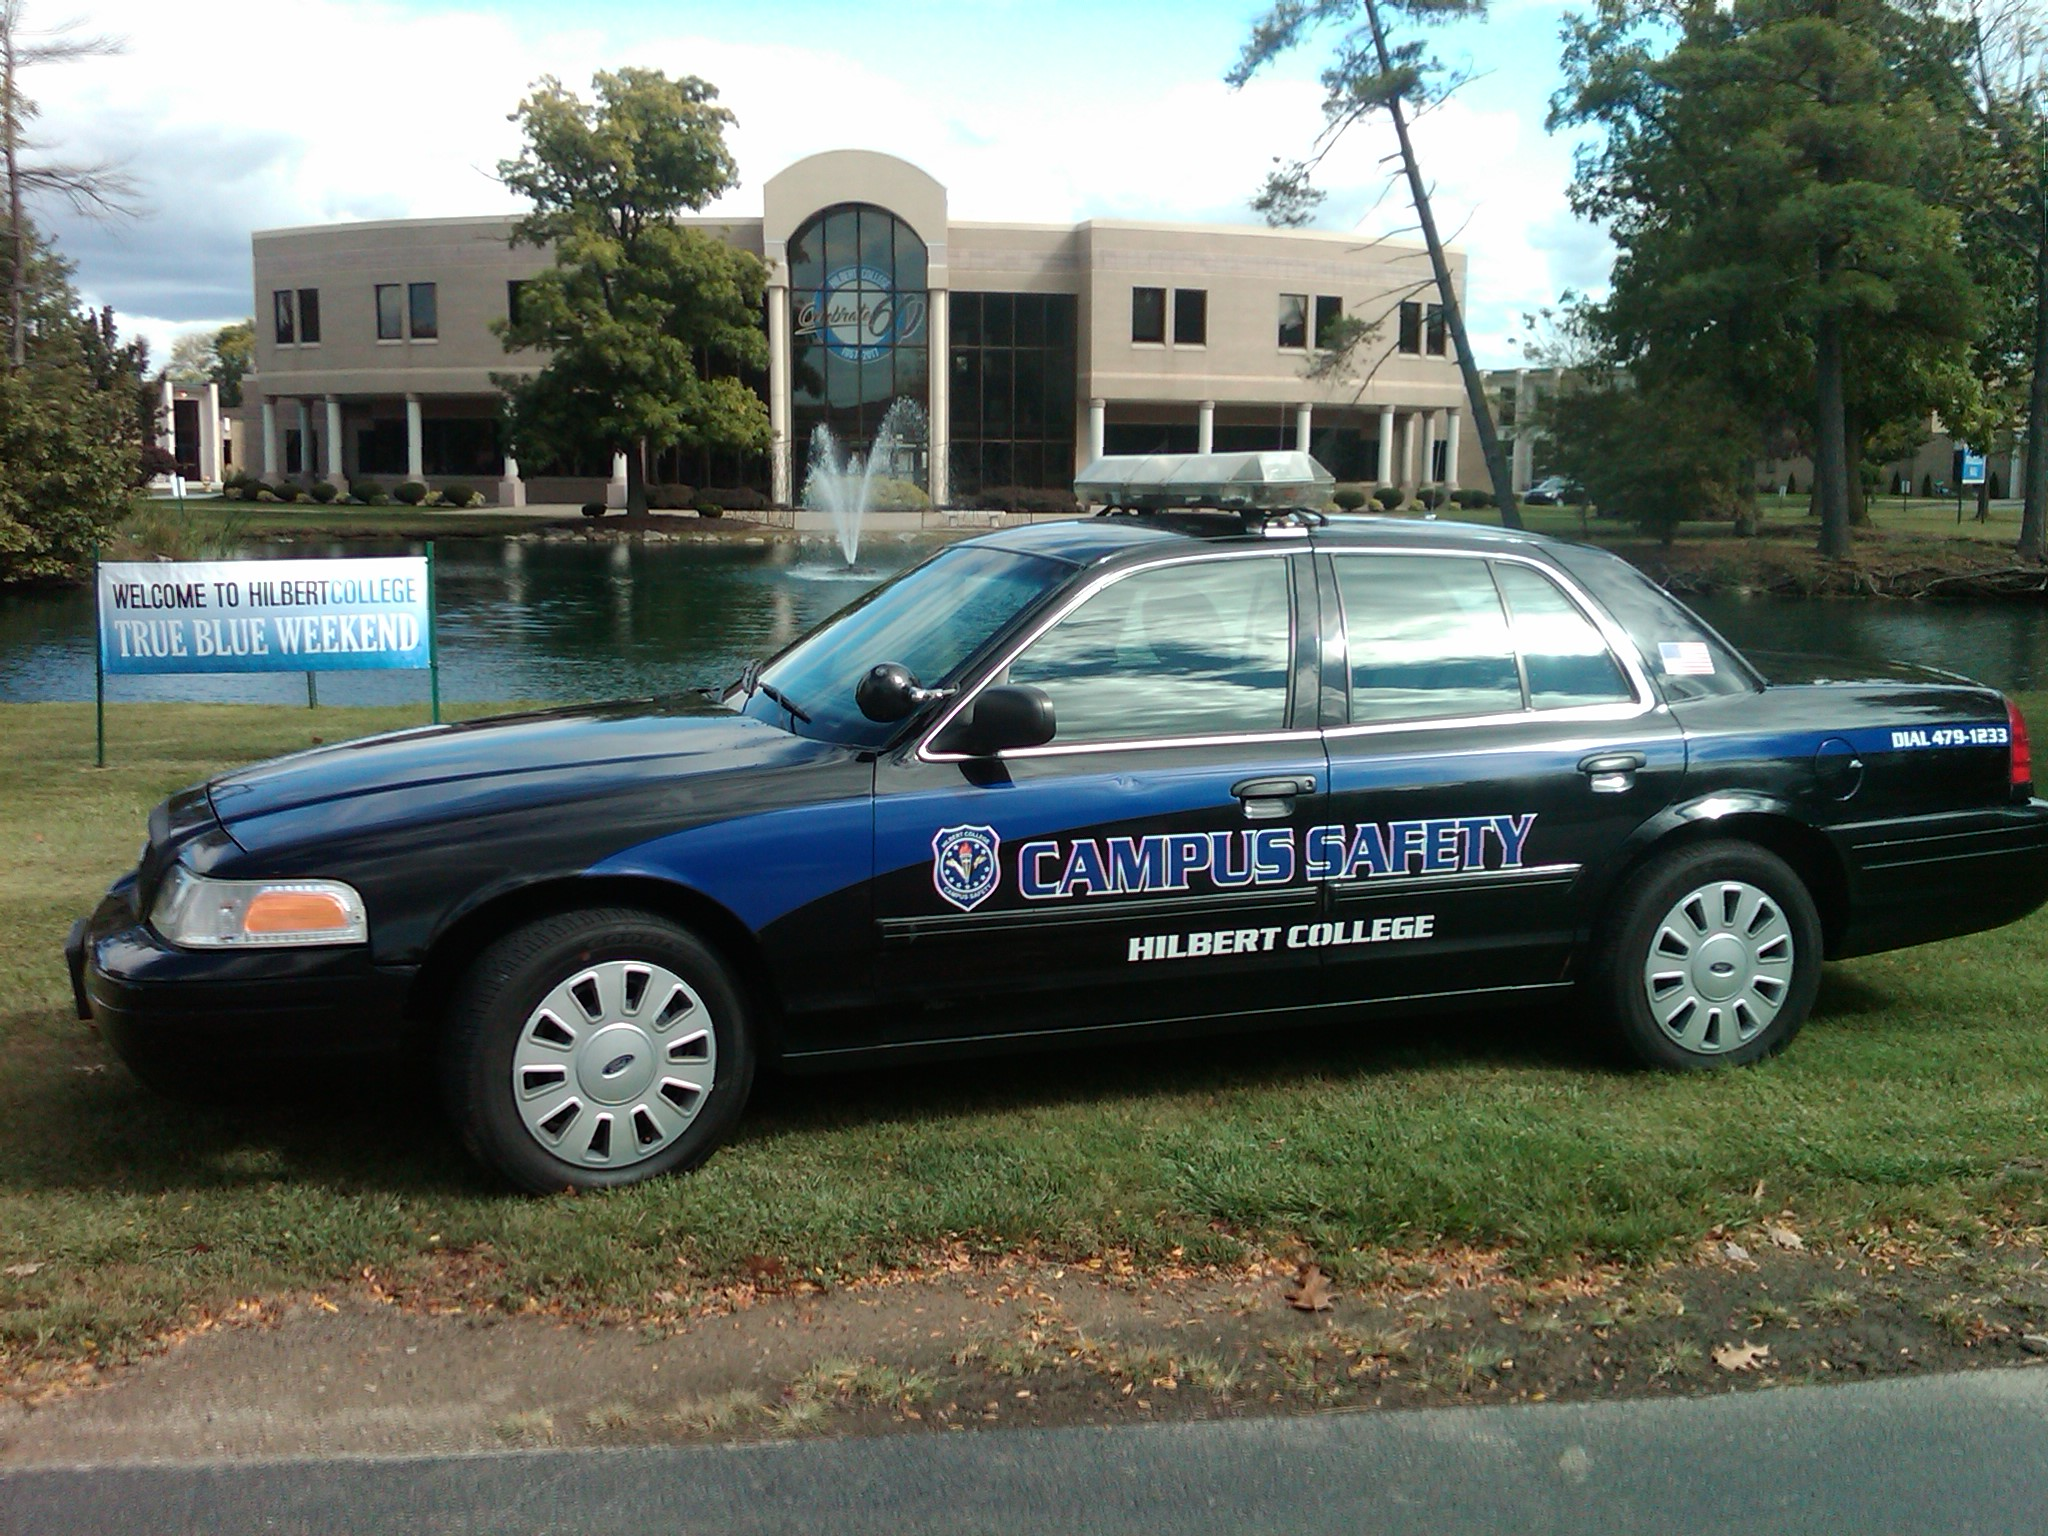 Campus Safety vehicle